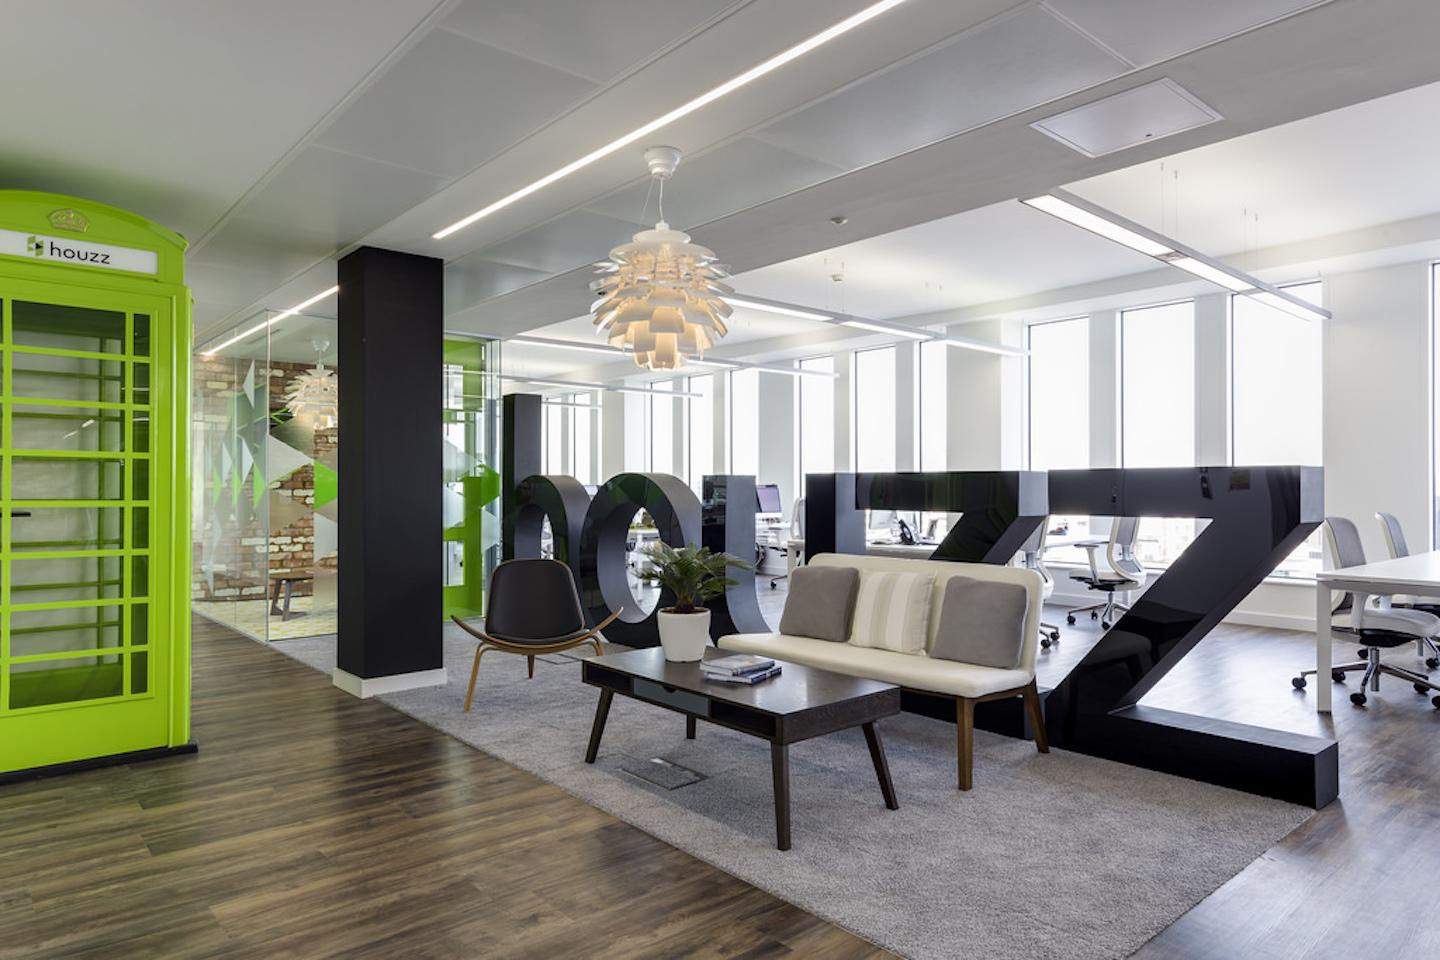 houzz-berlin-london-17.jpg